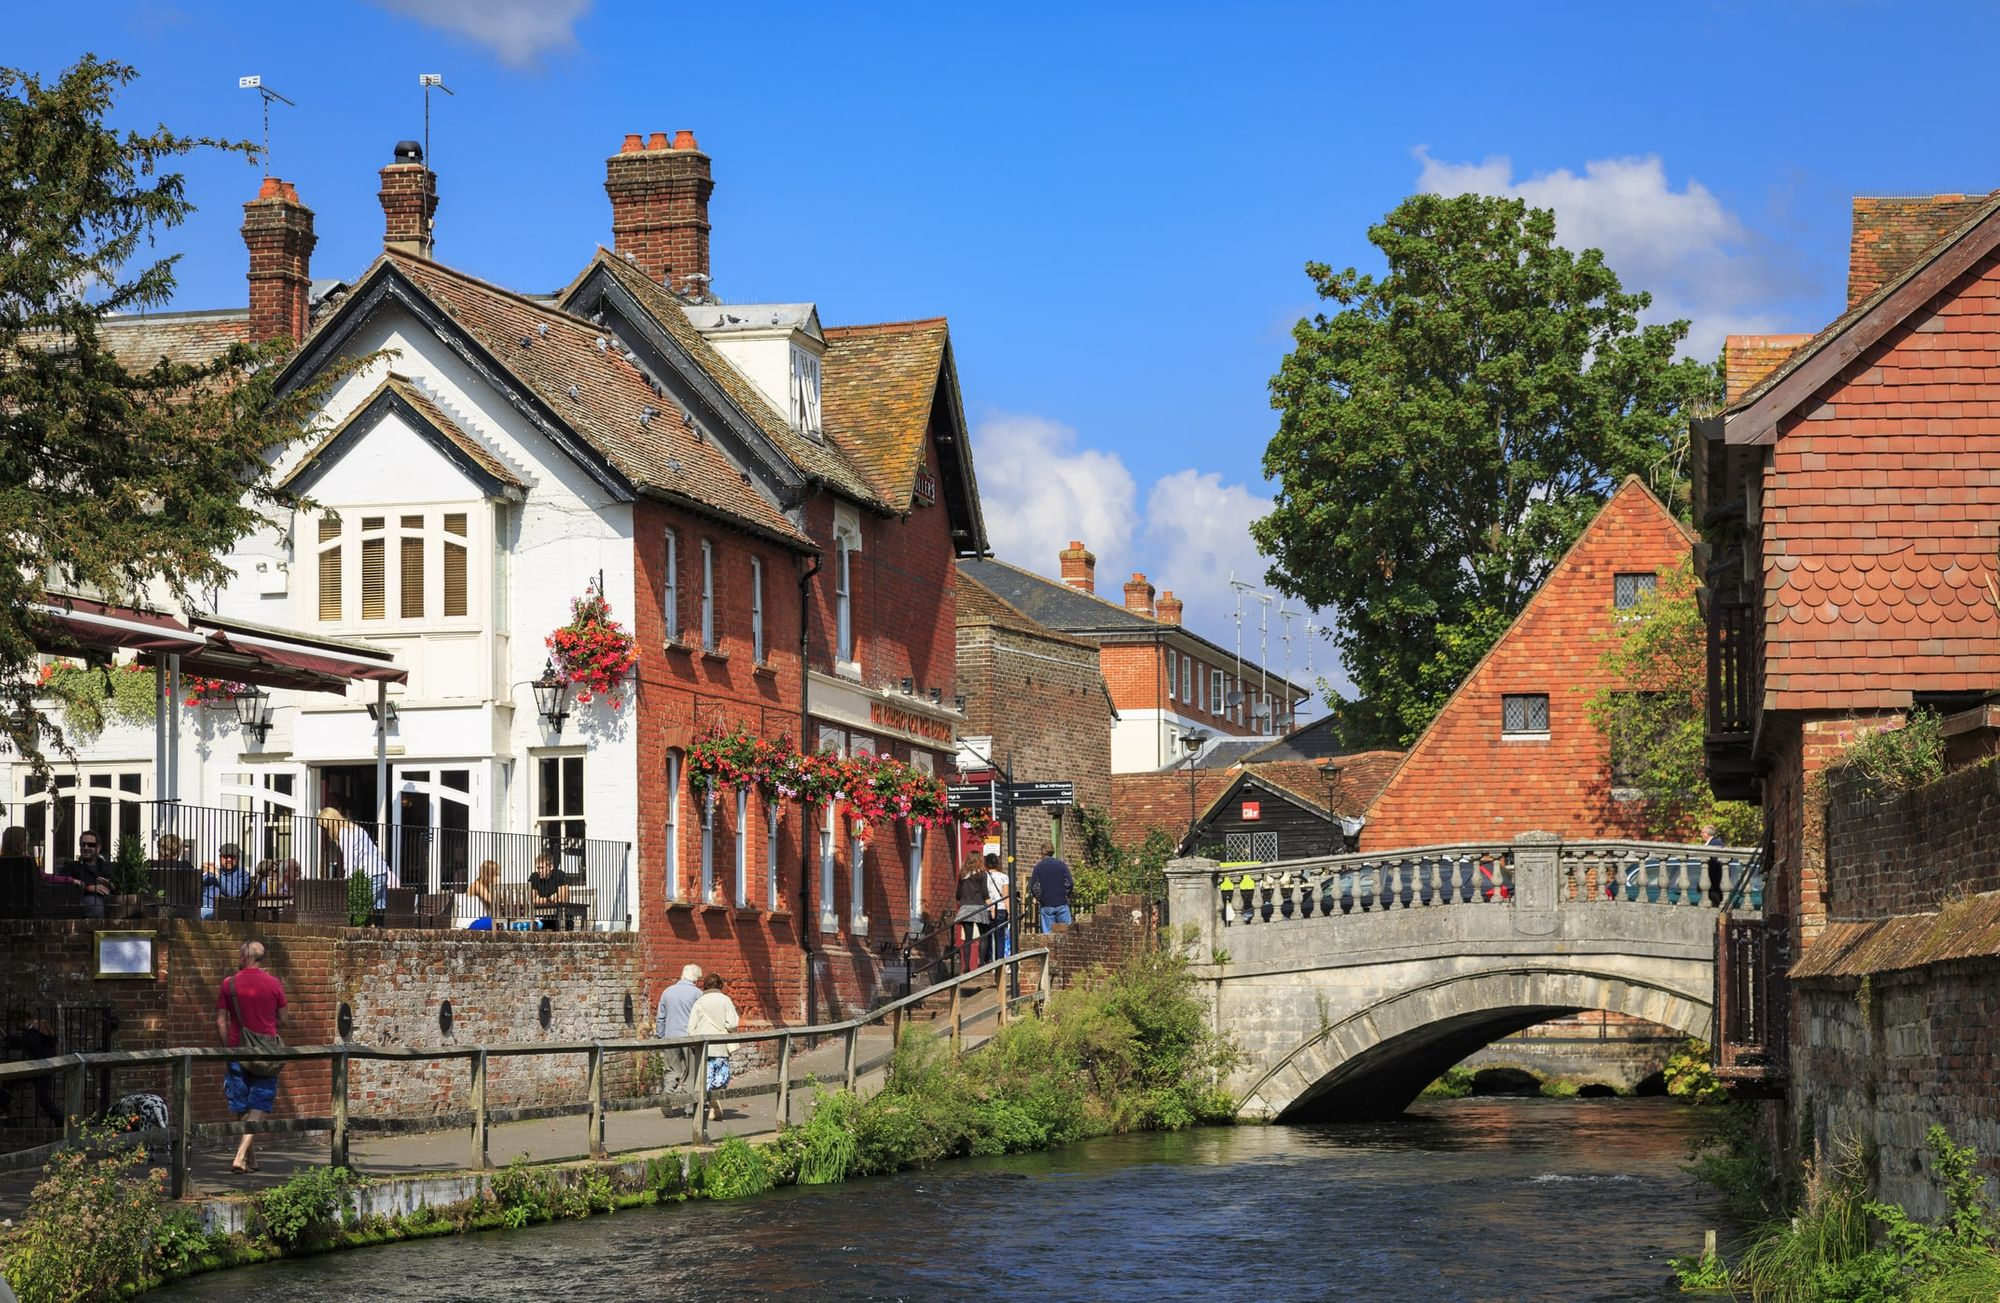 picturesque photo of a pub on the river in winchester